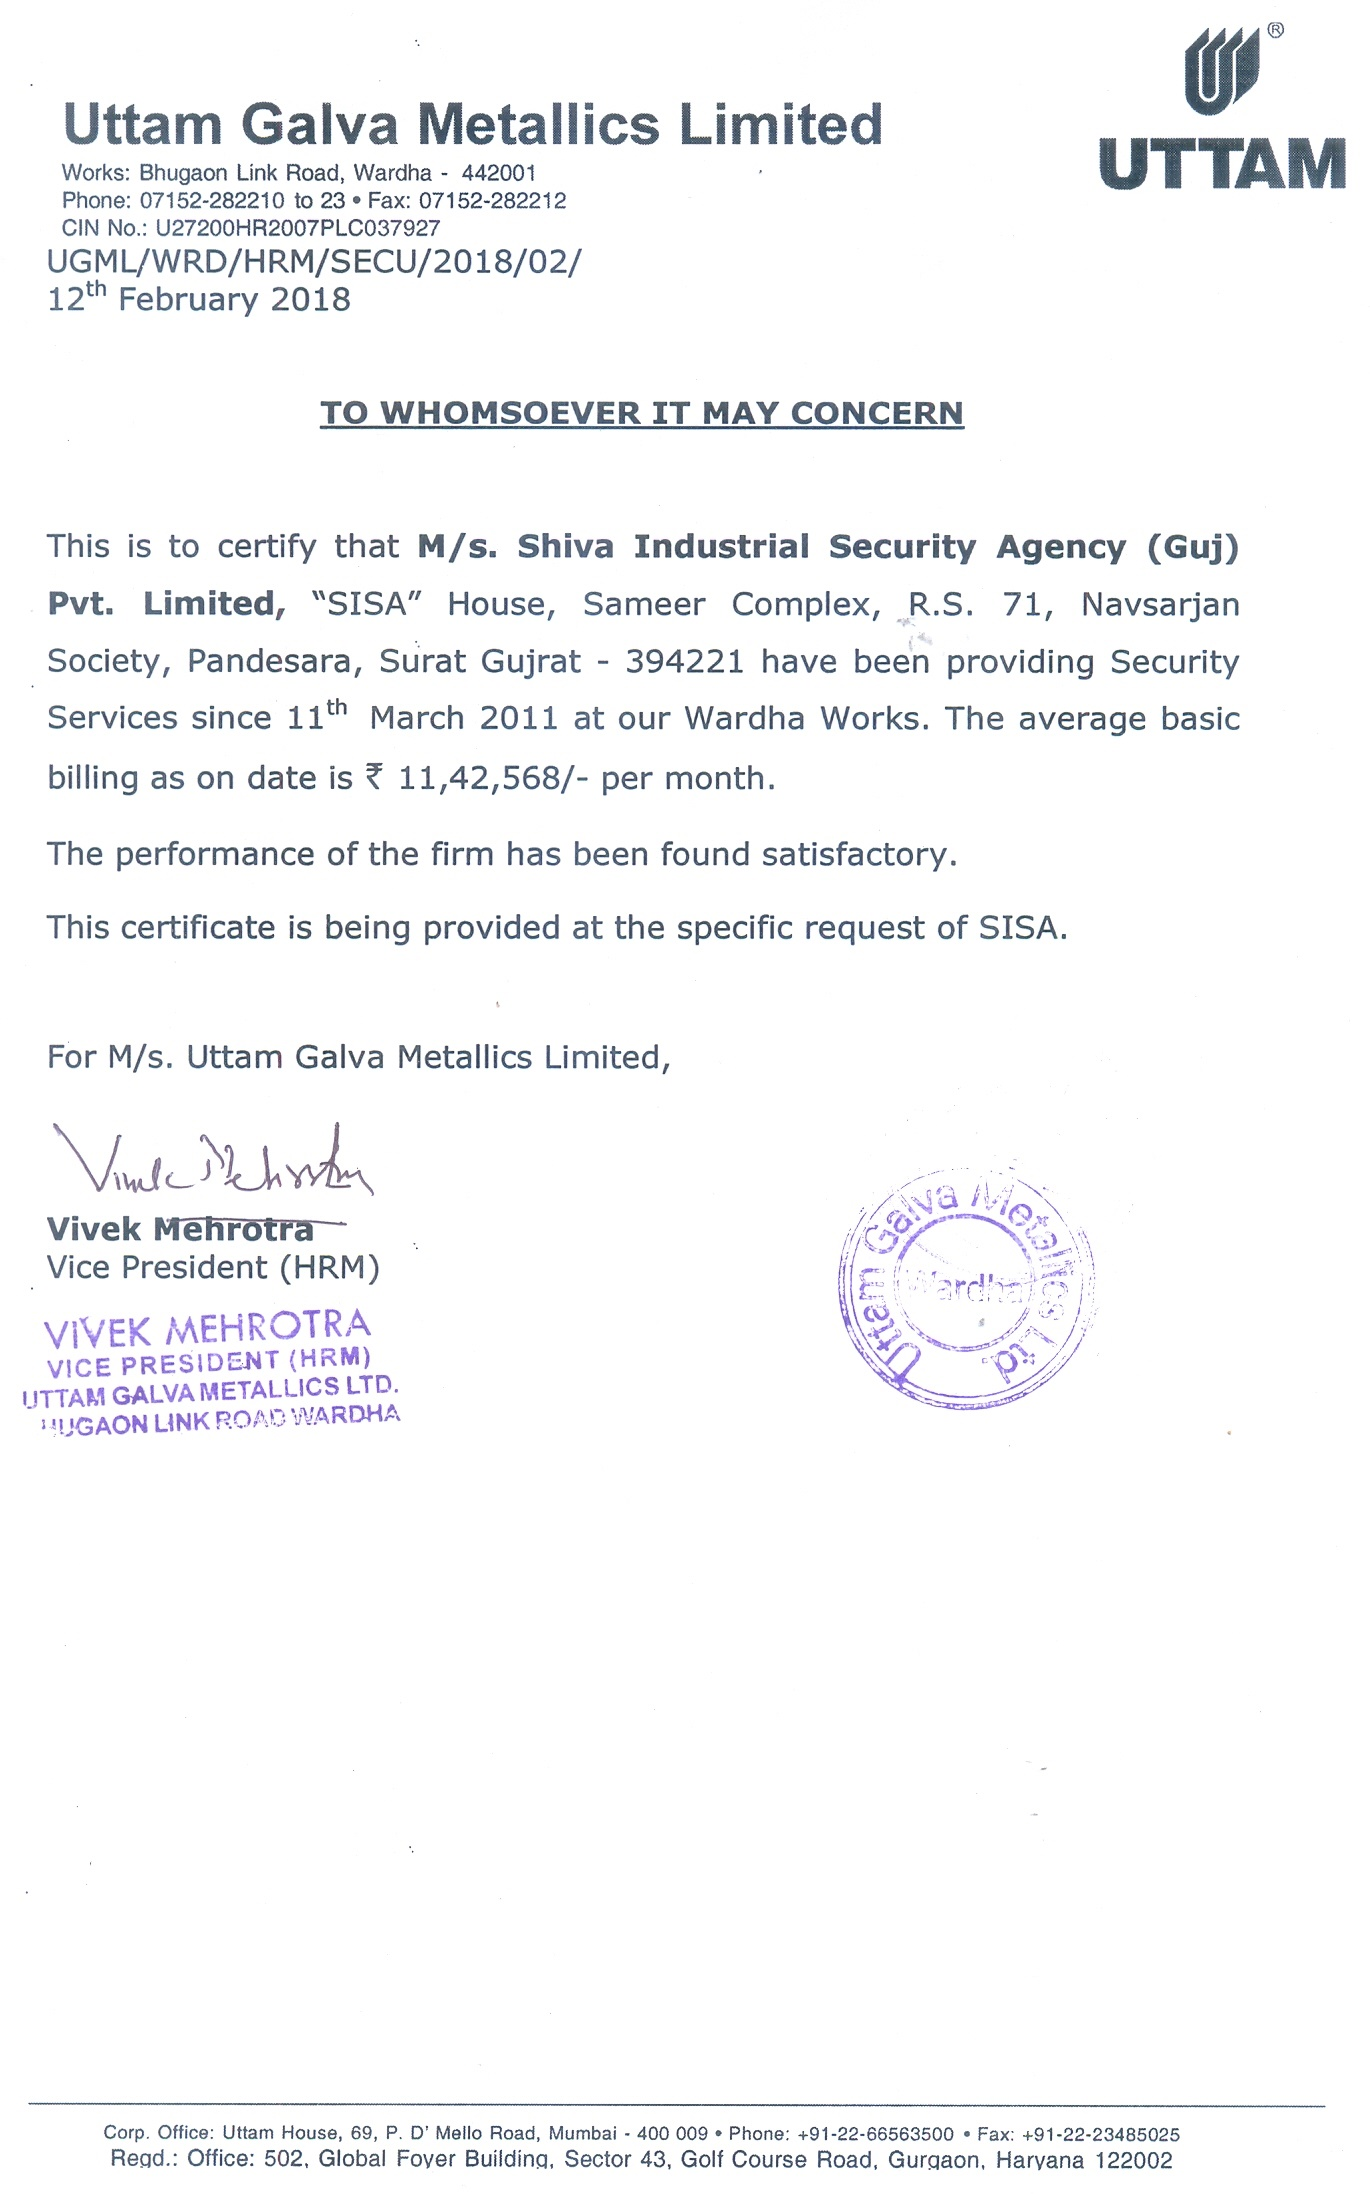 SISA SECURITY - EVER ALERT - BORN TO PROTECT